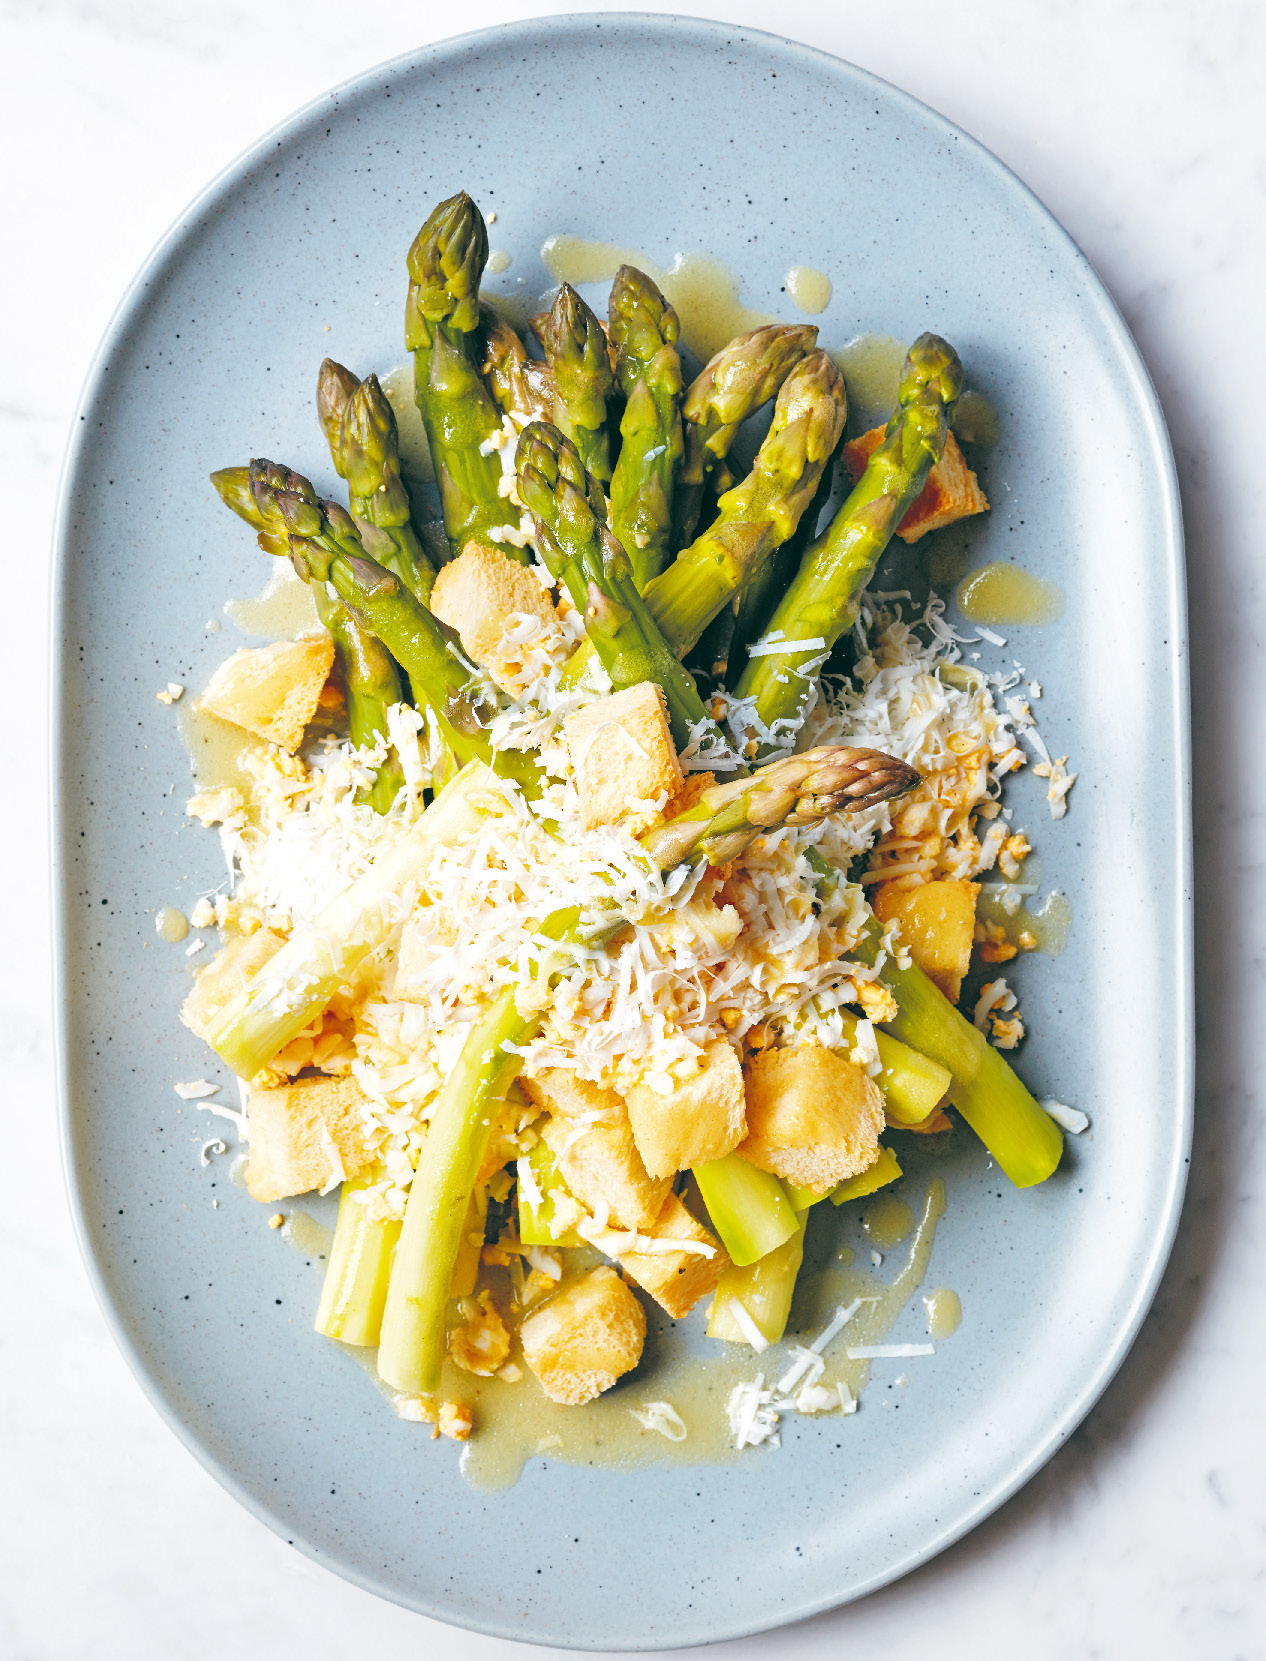 Asparagus with challah croutons and duck egg